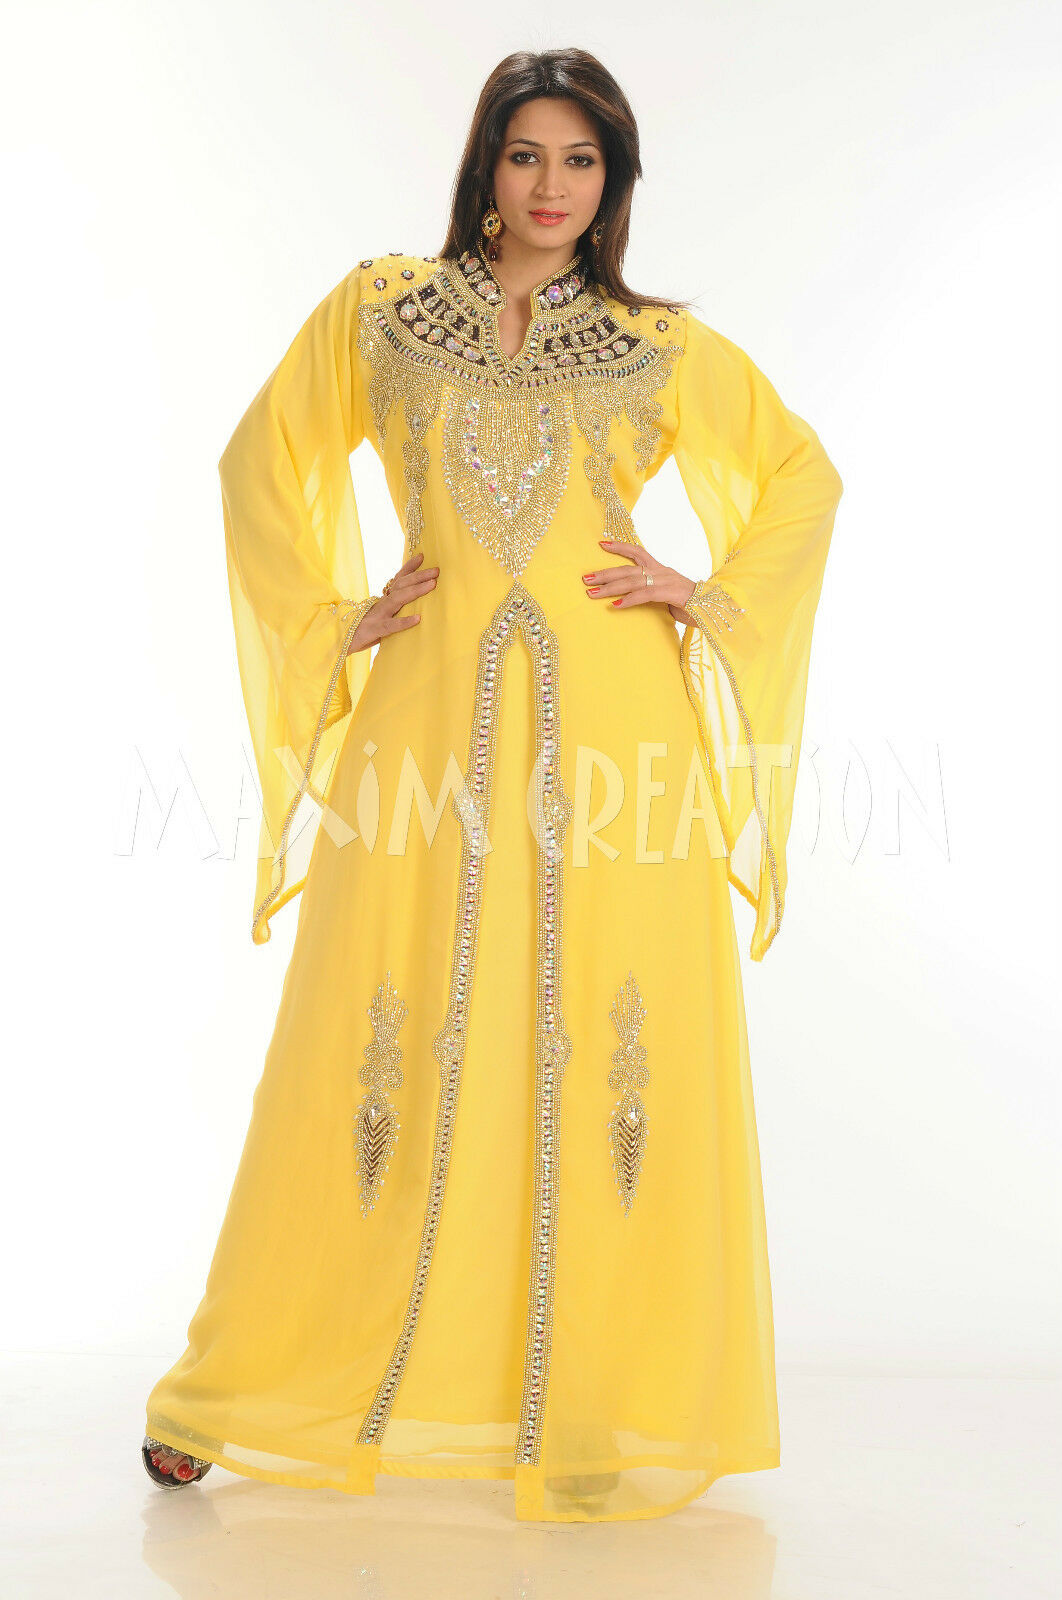 Royal Mgoldccan Caftan Kaftn abaya jalabiya Ladies Maxi Dress Wedding Wedding Wedding gown 3391 ff2b8e